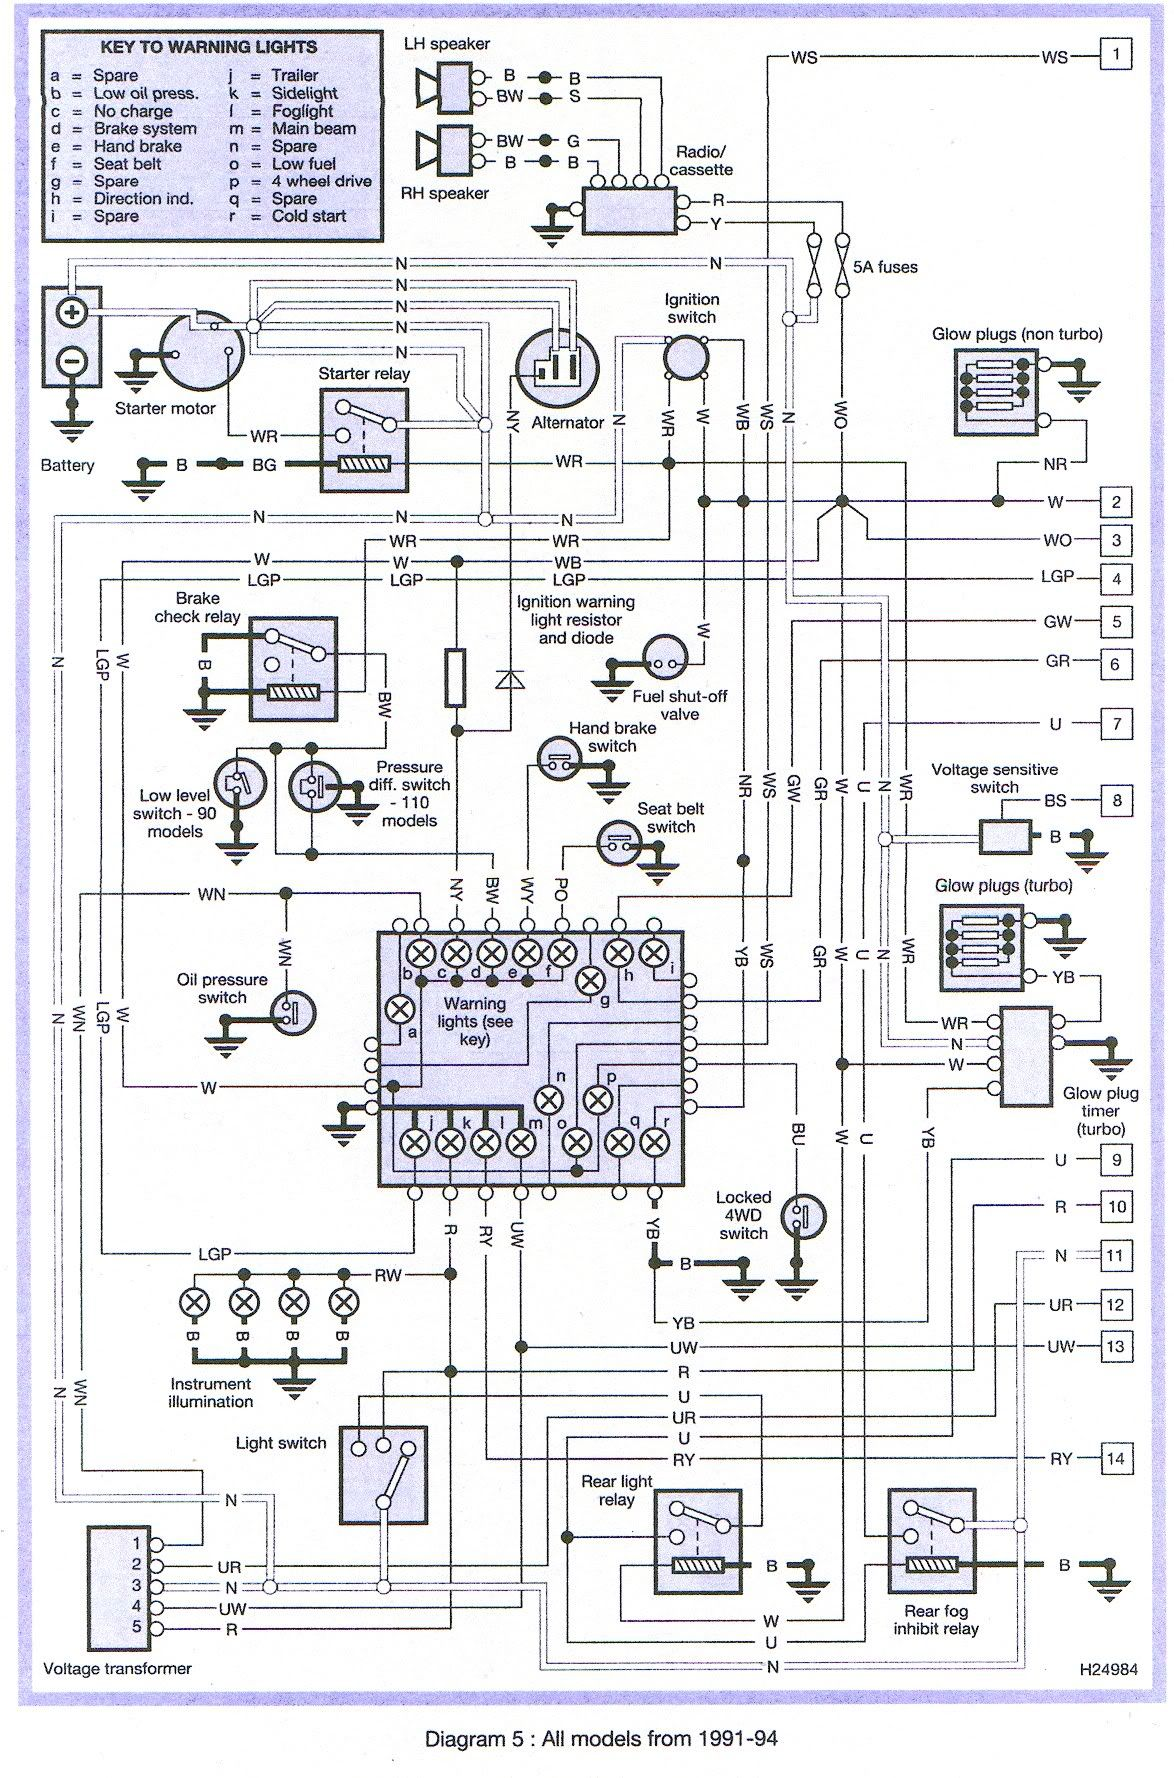 small resolution of for ge oven wiring diagram jbp26gv3ad wiring diagram centre for ge oven wiring diagram jbp26gv3ad